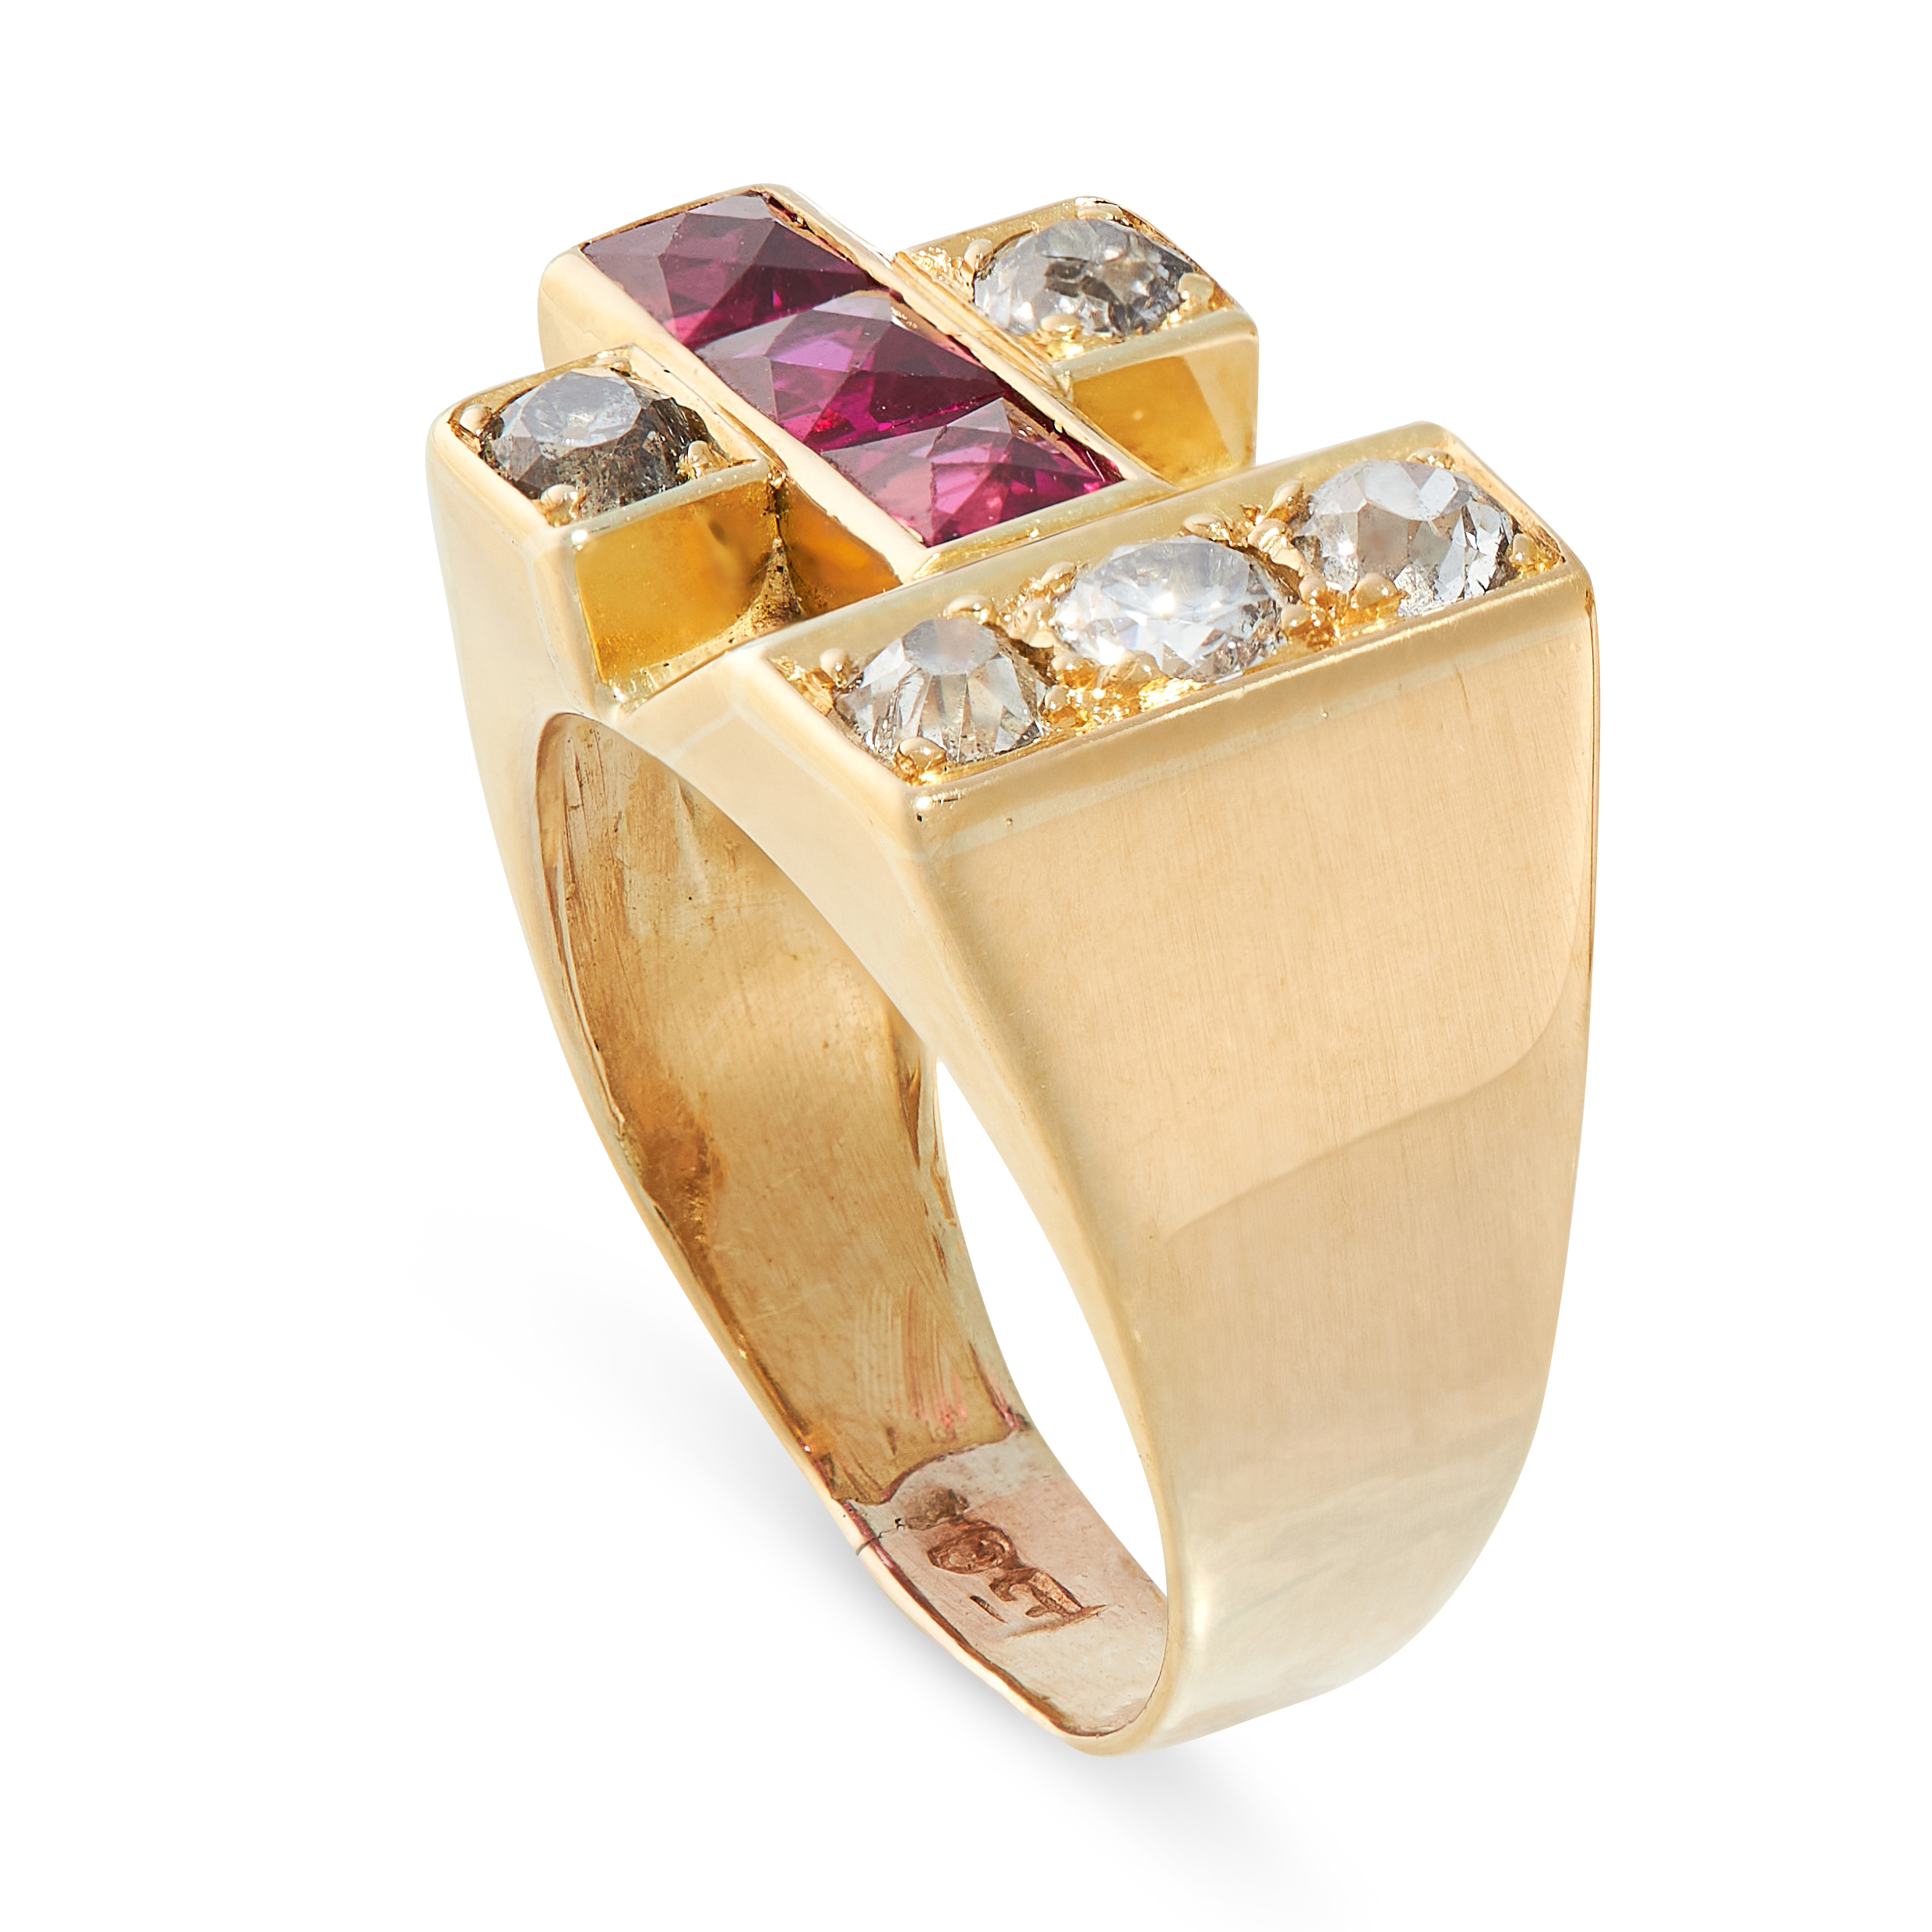 A RETRO DIAMOND AND RUBY RING in 18ct yellow gold, set with three French cut synthetic rubies and - Image 2 of 2